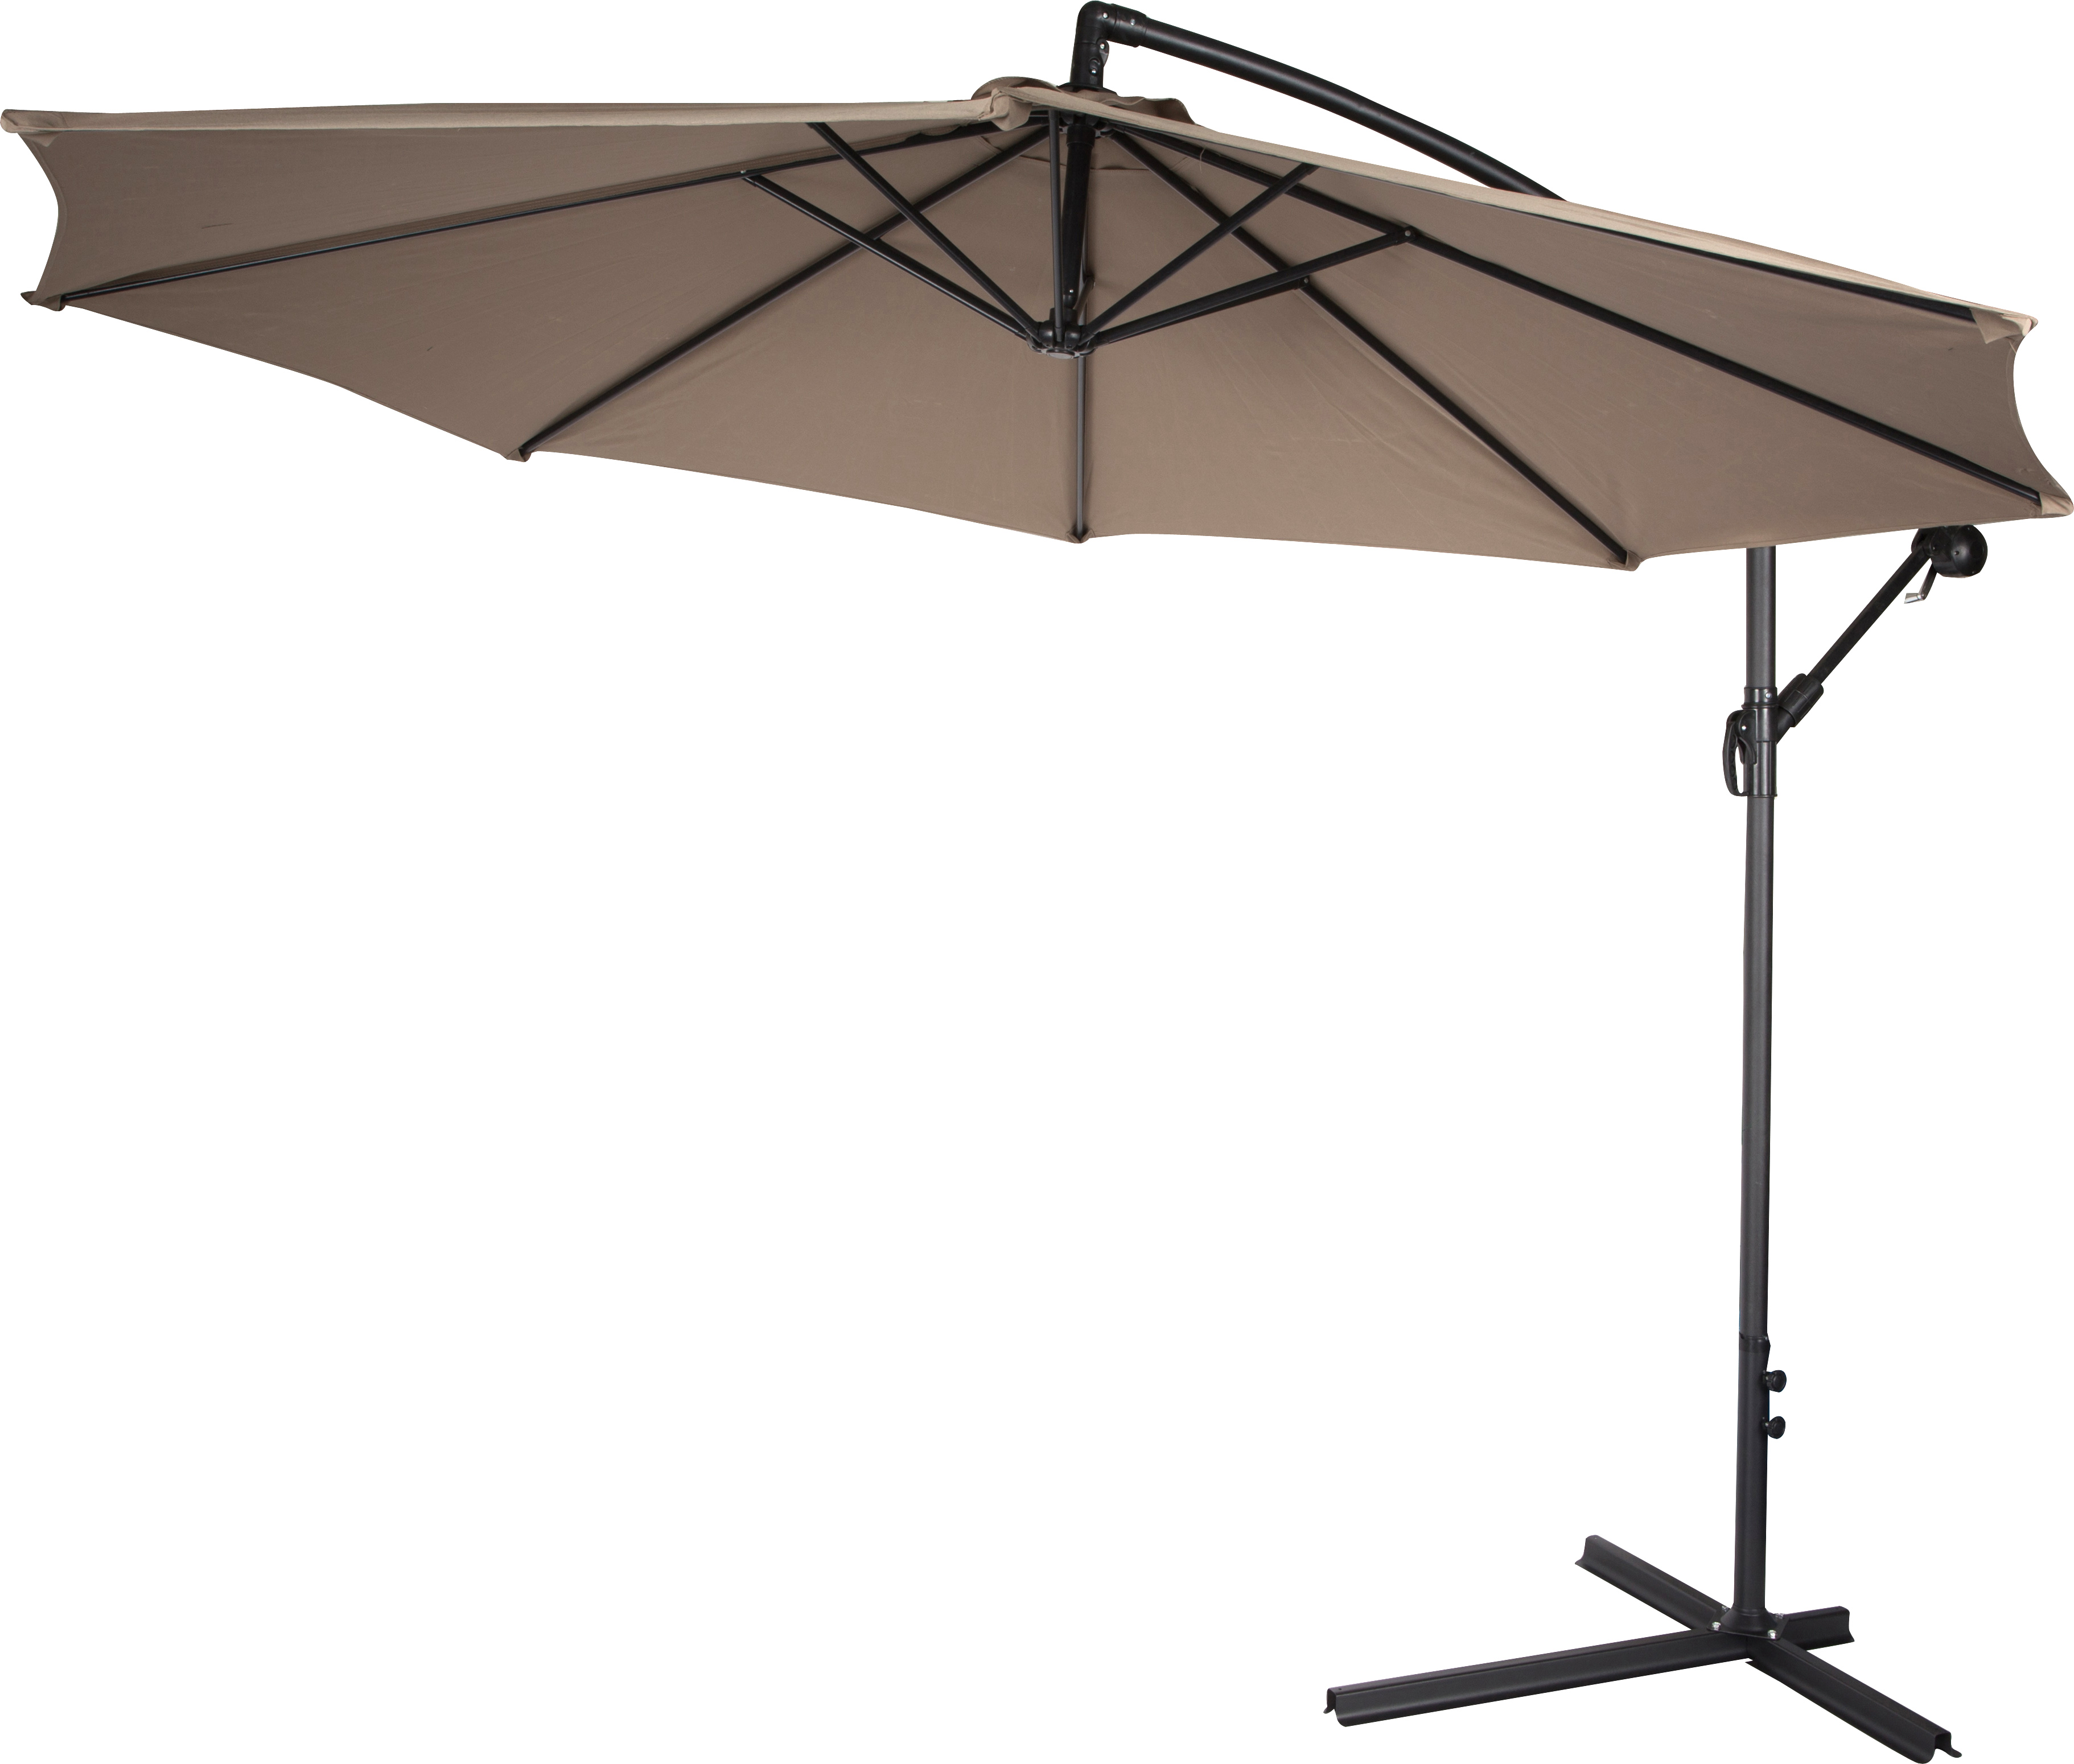 Exceptional Deluxe Polyester Offset Patio Umbrella   10u0027   By Trademark Innovations ...